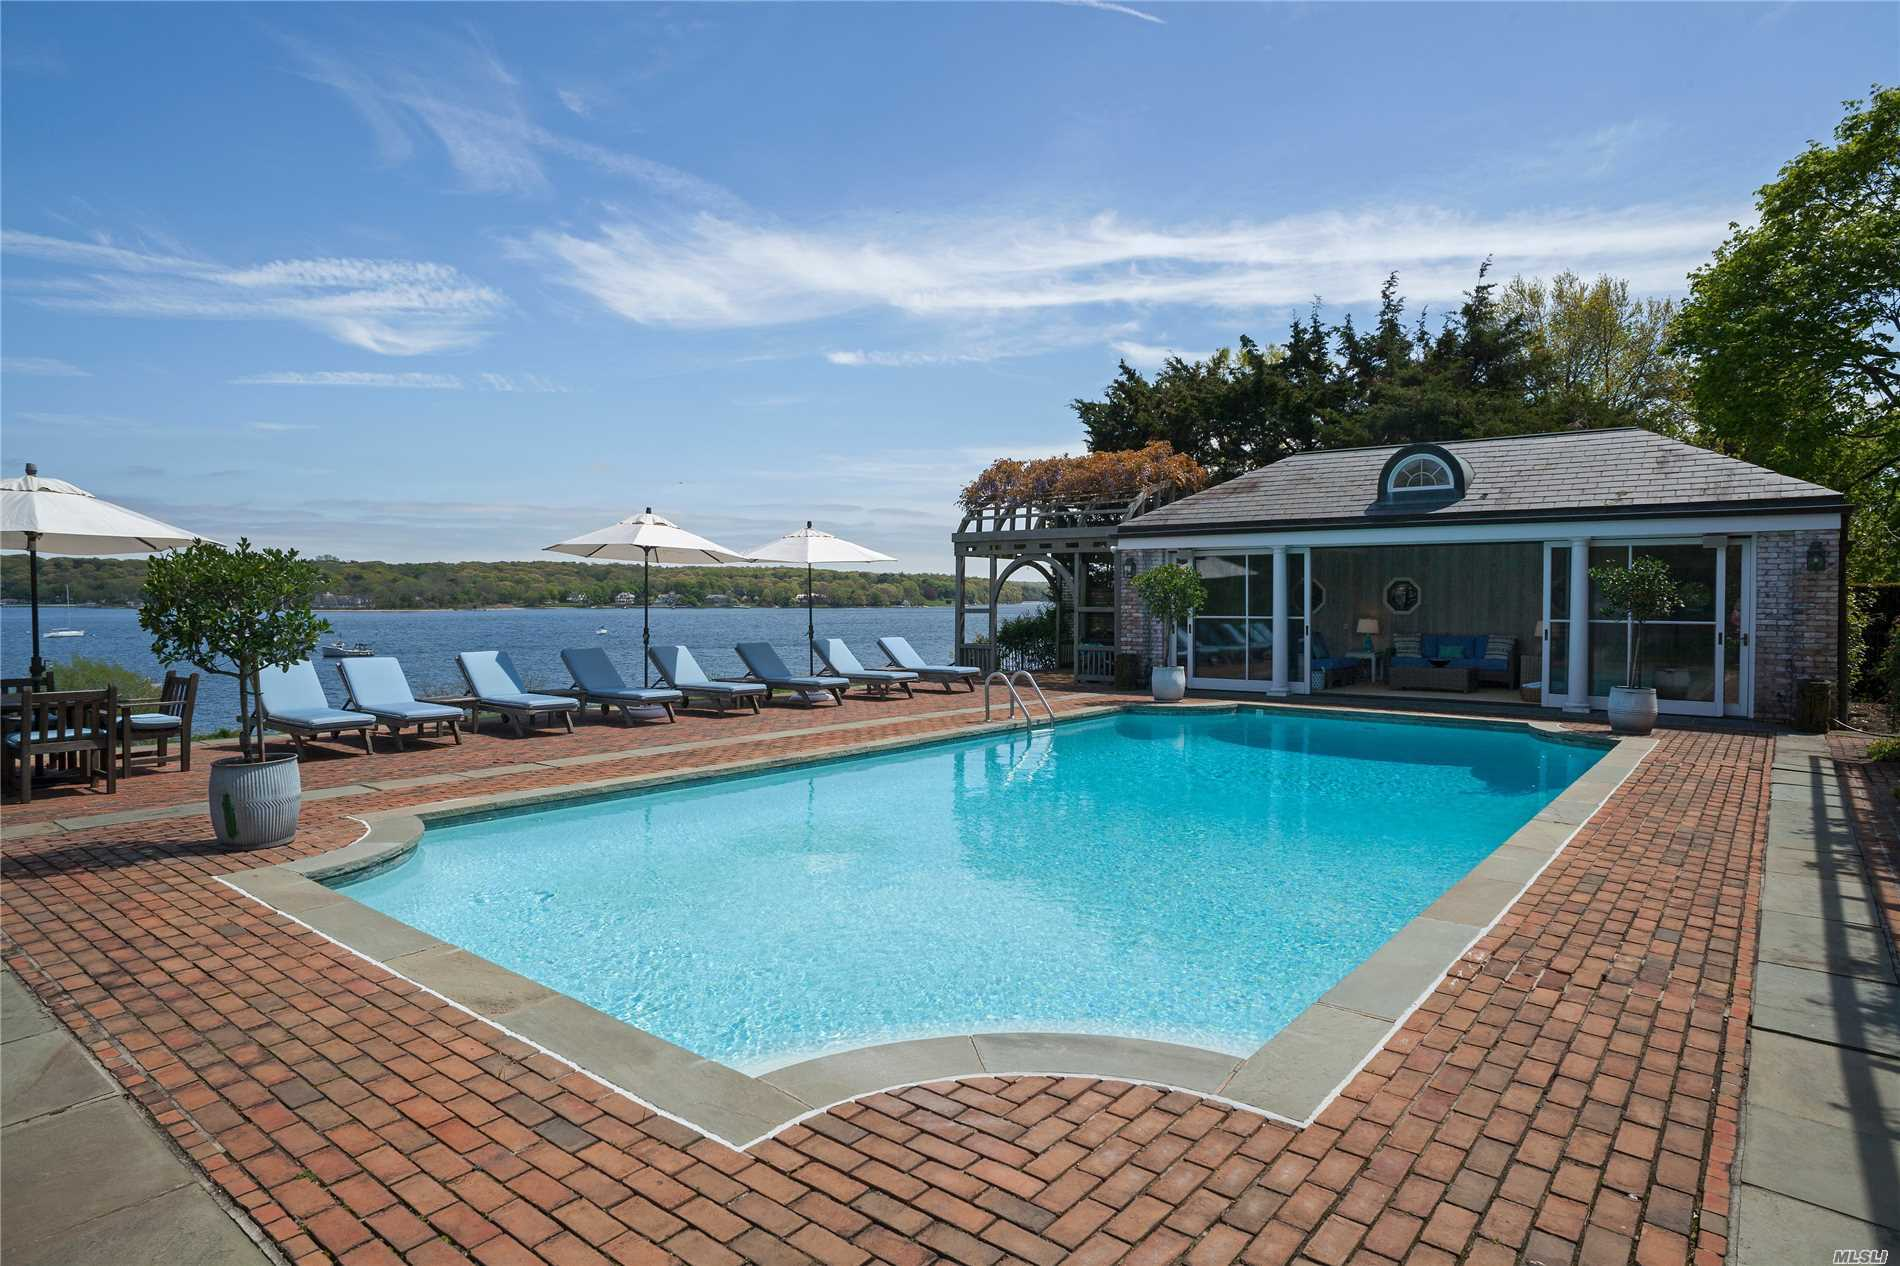 This Premiere Centre Island Compound Is The Perfect Hampton's Alternative! A Majestic 653' Waterfront Estate With A 306' Long Dock On Oyster Bay. Amazing Views Of Ob Harbor, Lloyd Harbor, And Cove Neck. Three Homes On An Impeccably Manicured 7.26 Acres. Main House Had A Complete Renovation In 2010. Guest House And Cottage Each With 4 Bedrooms. Dock, Pool, Pool House, Har-Tru Tennis Court, Putting Green, And 6 And 2 Car Garages. A Short Drive From Manhattan,